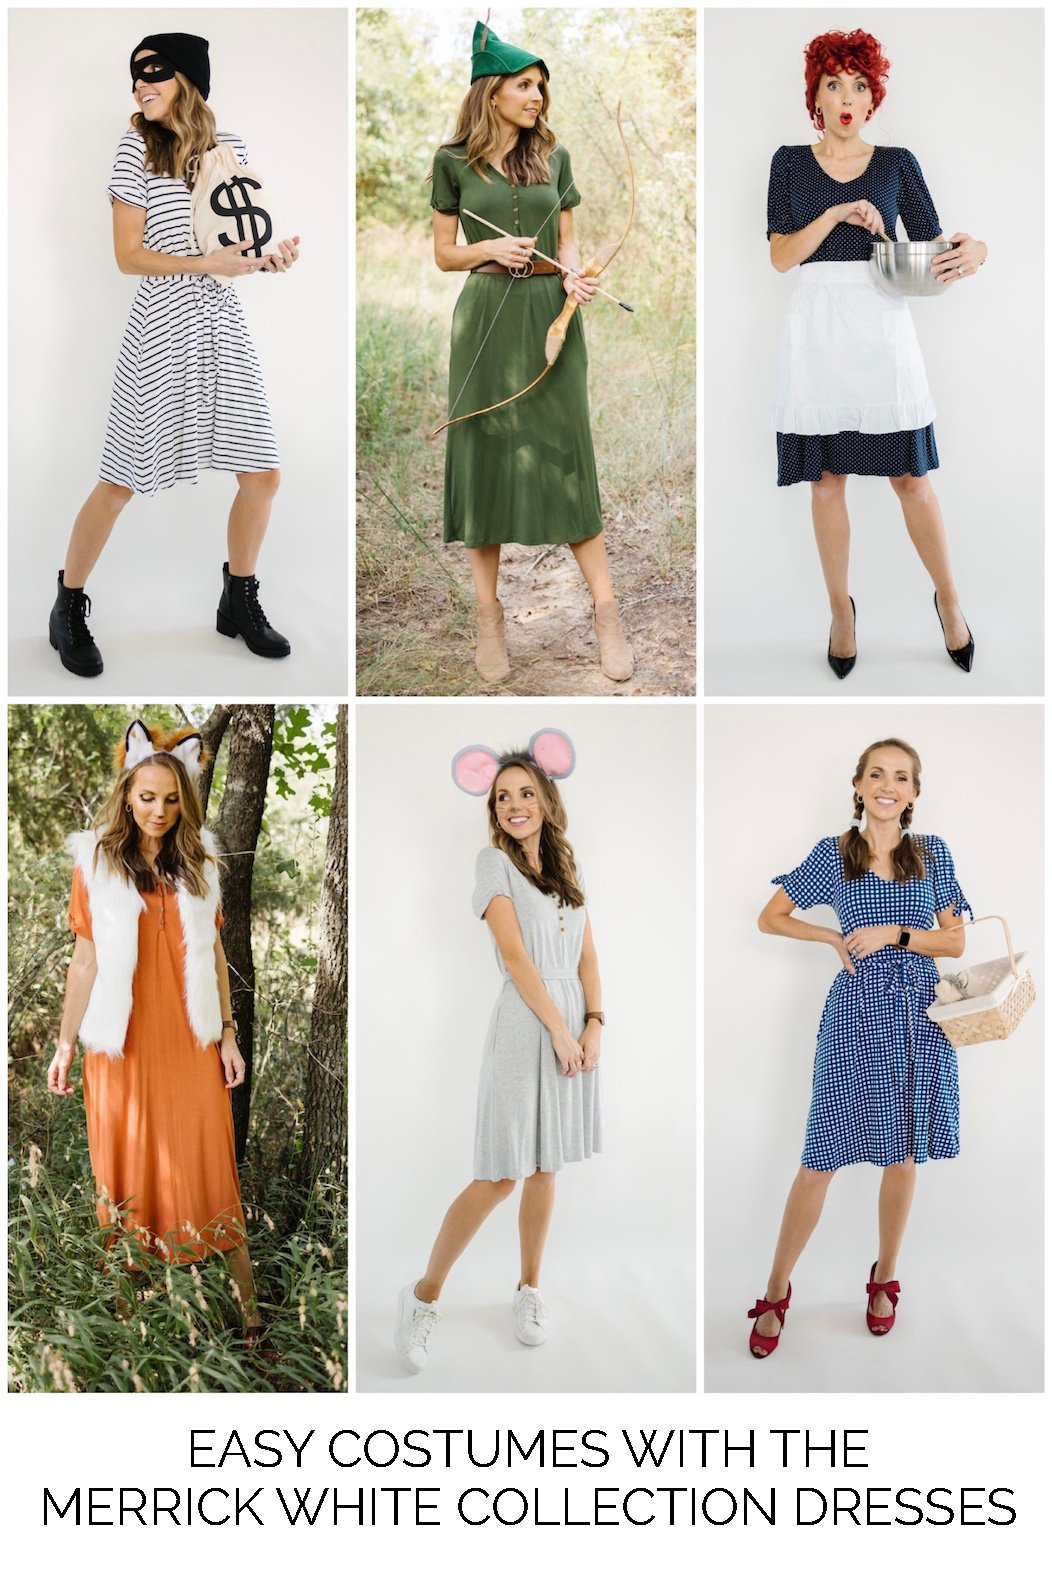 costumes with merrick white collection dresses